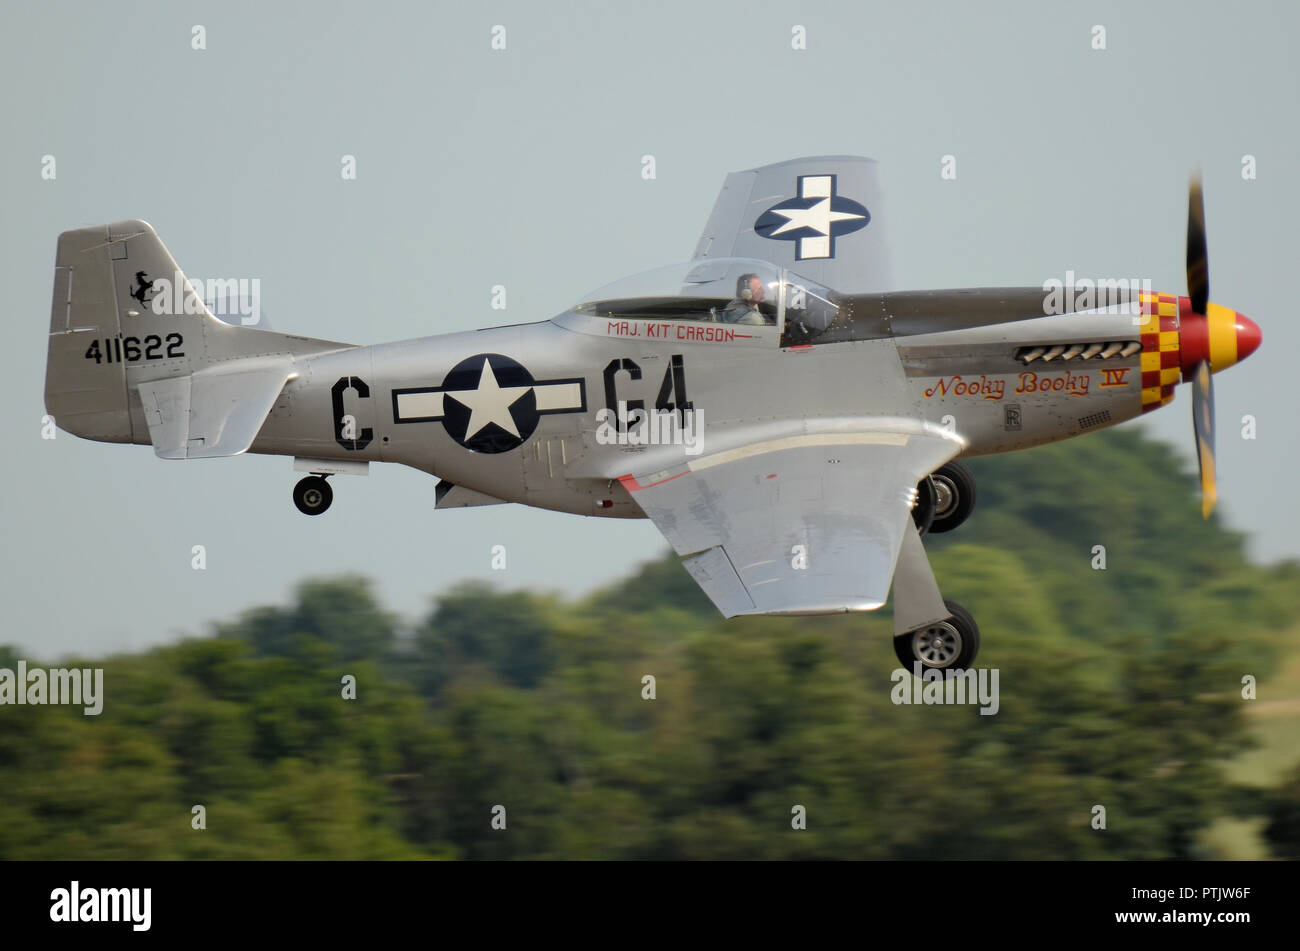 North American P-51 Mustang fighter plane named Nooky Booky IV flying at an airshow. Flying low past trees. Undercarriage down. Space for copy - Stock Image